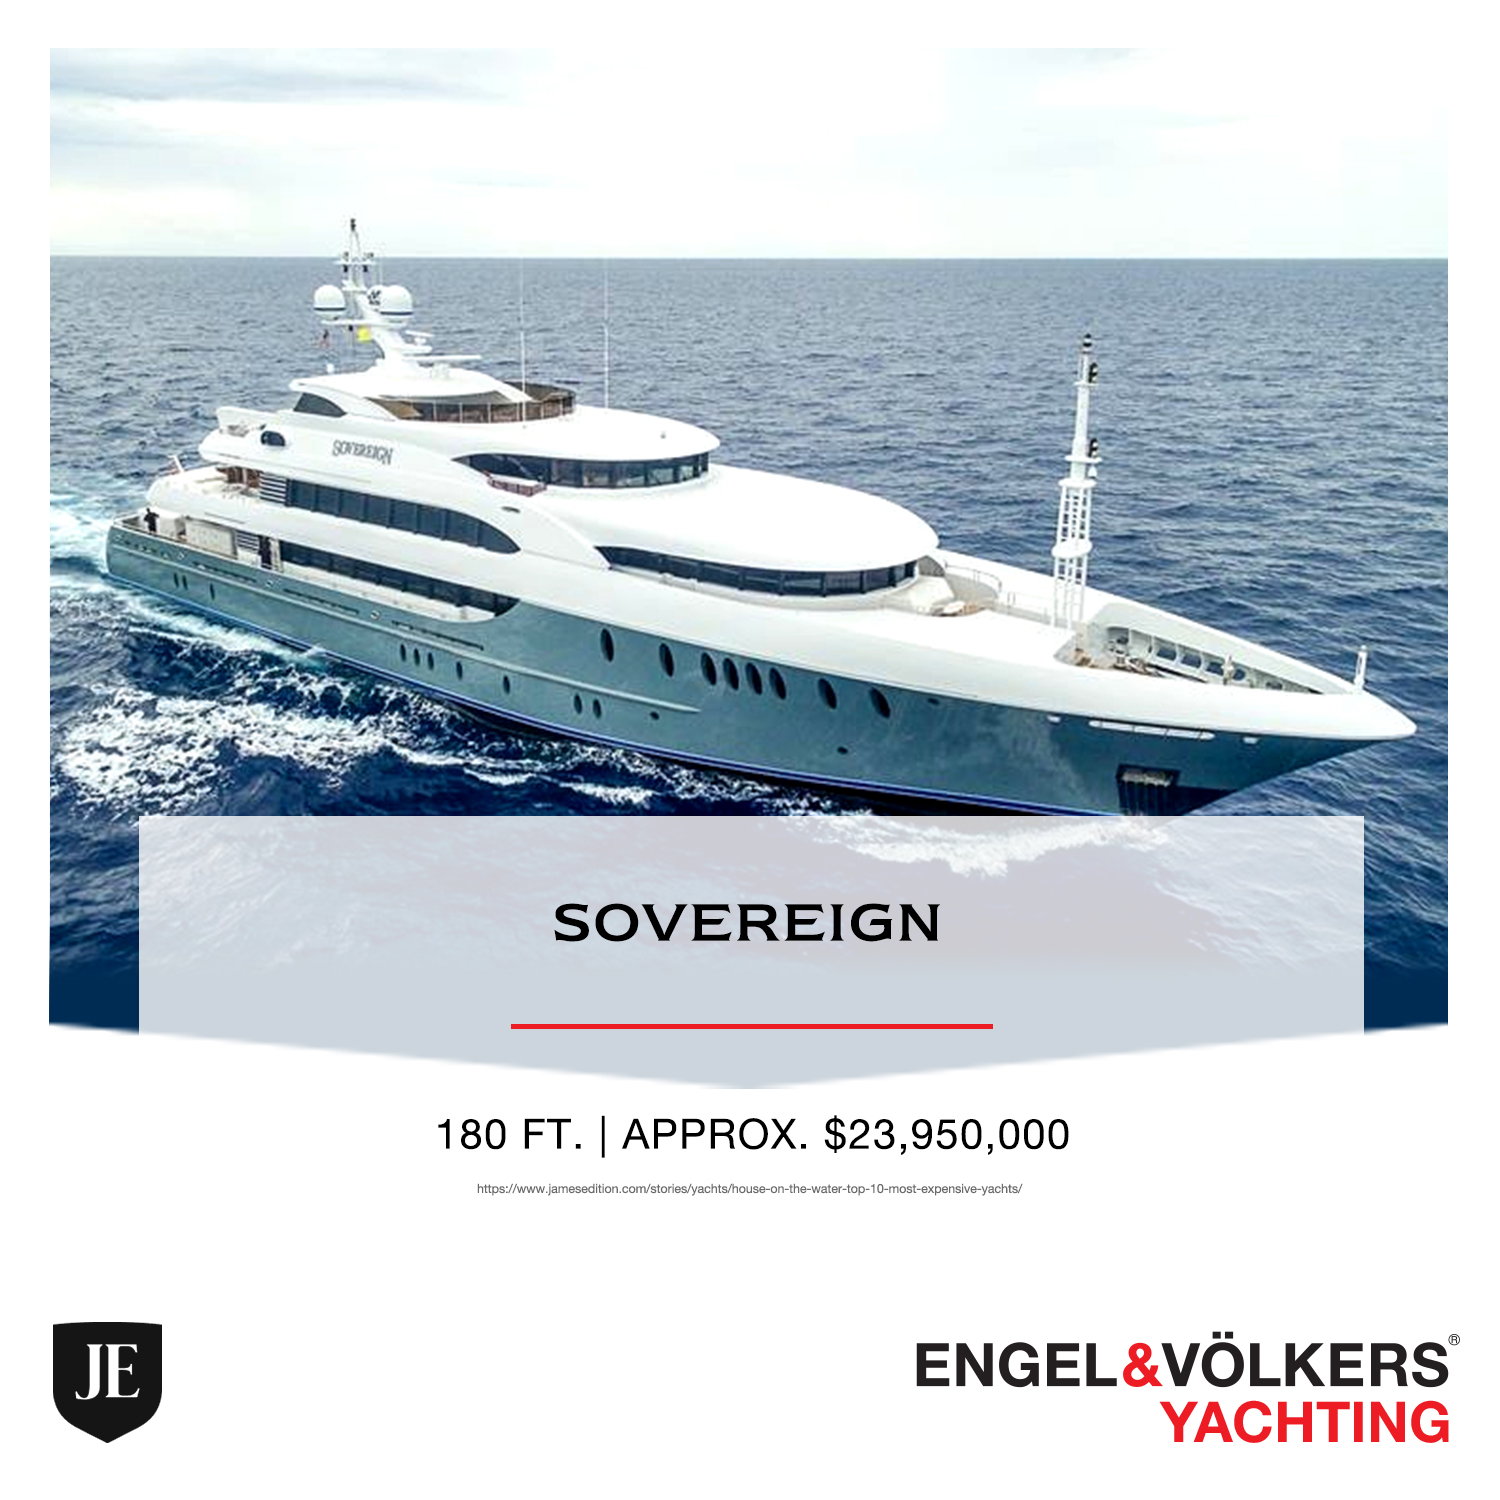 Sovereign YACHT ENGEL & VOLKERS YACHTING